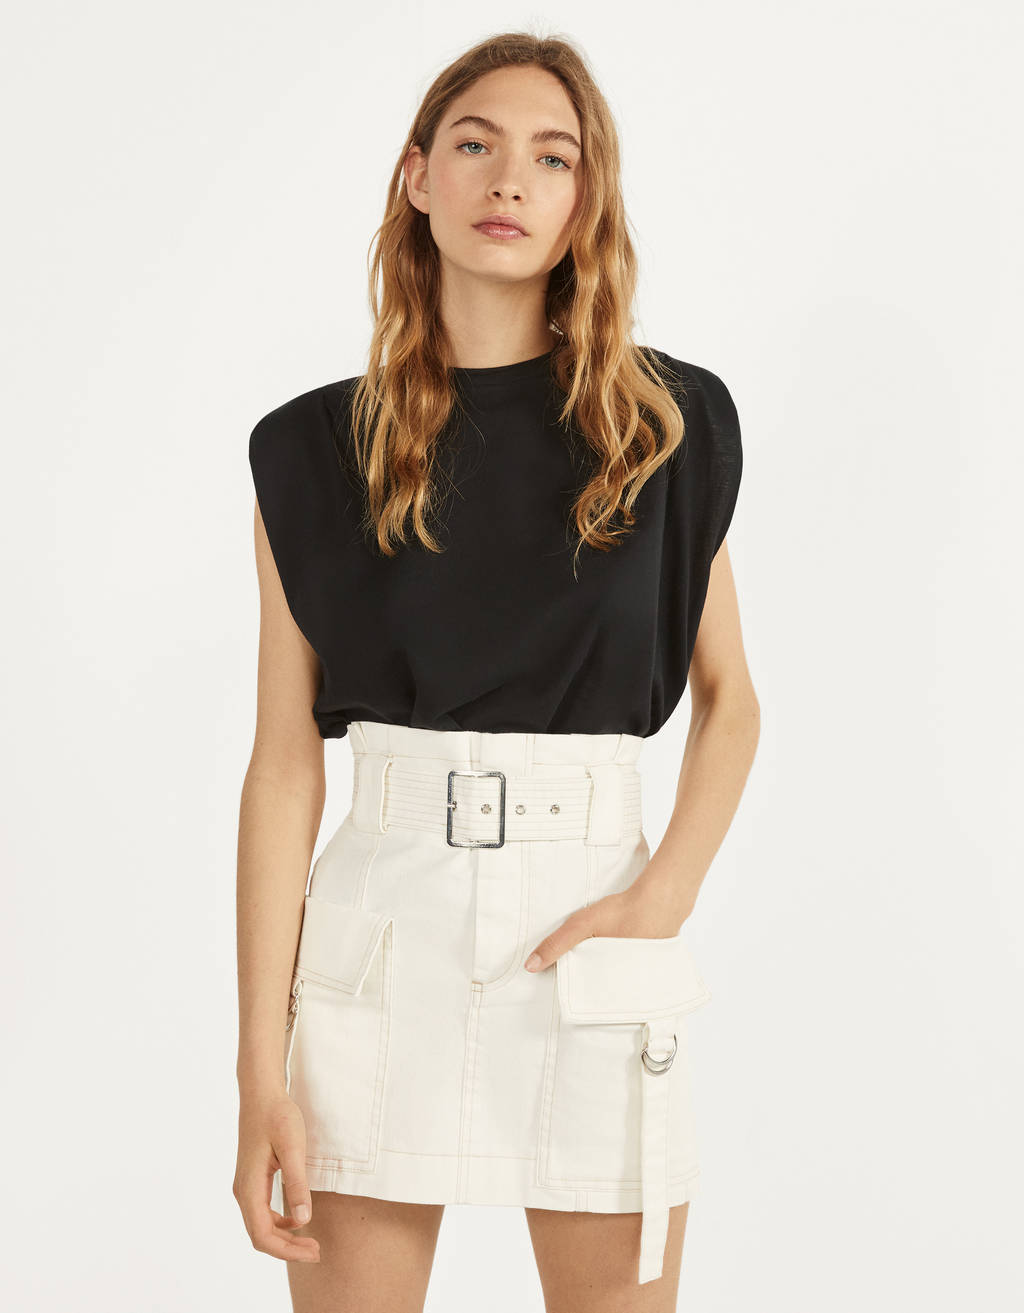 Cargo skirt with belt